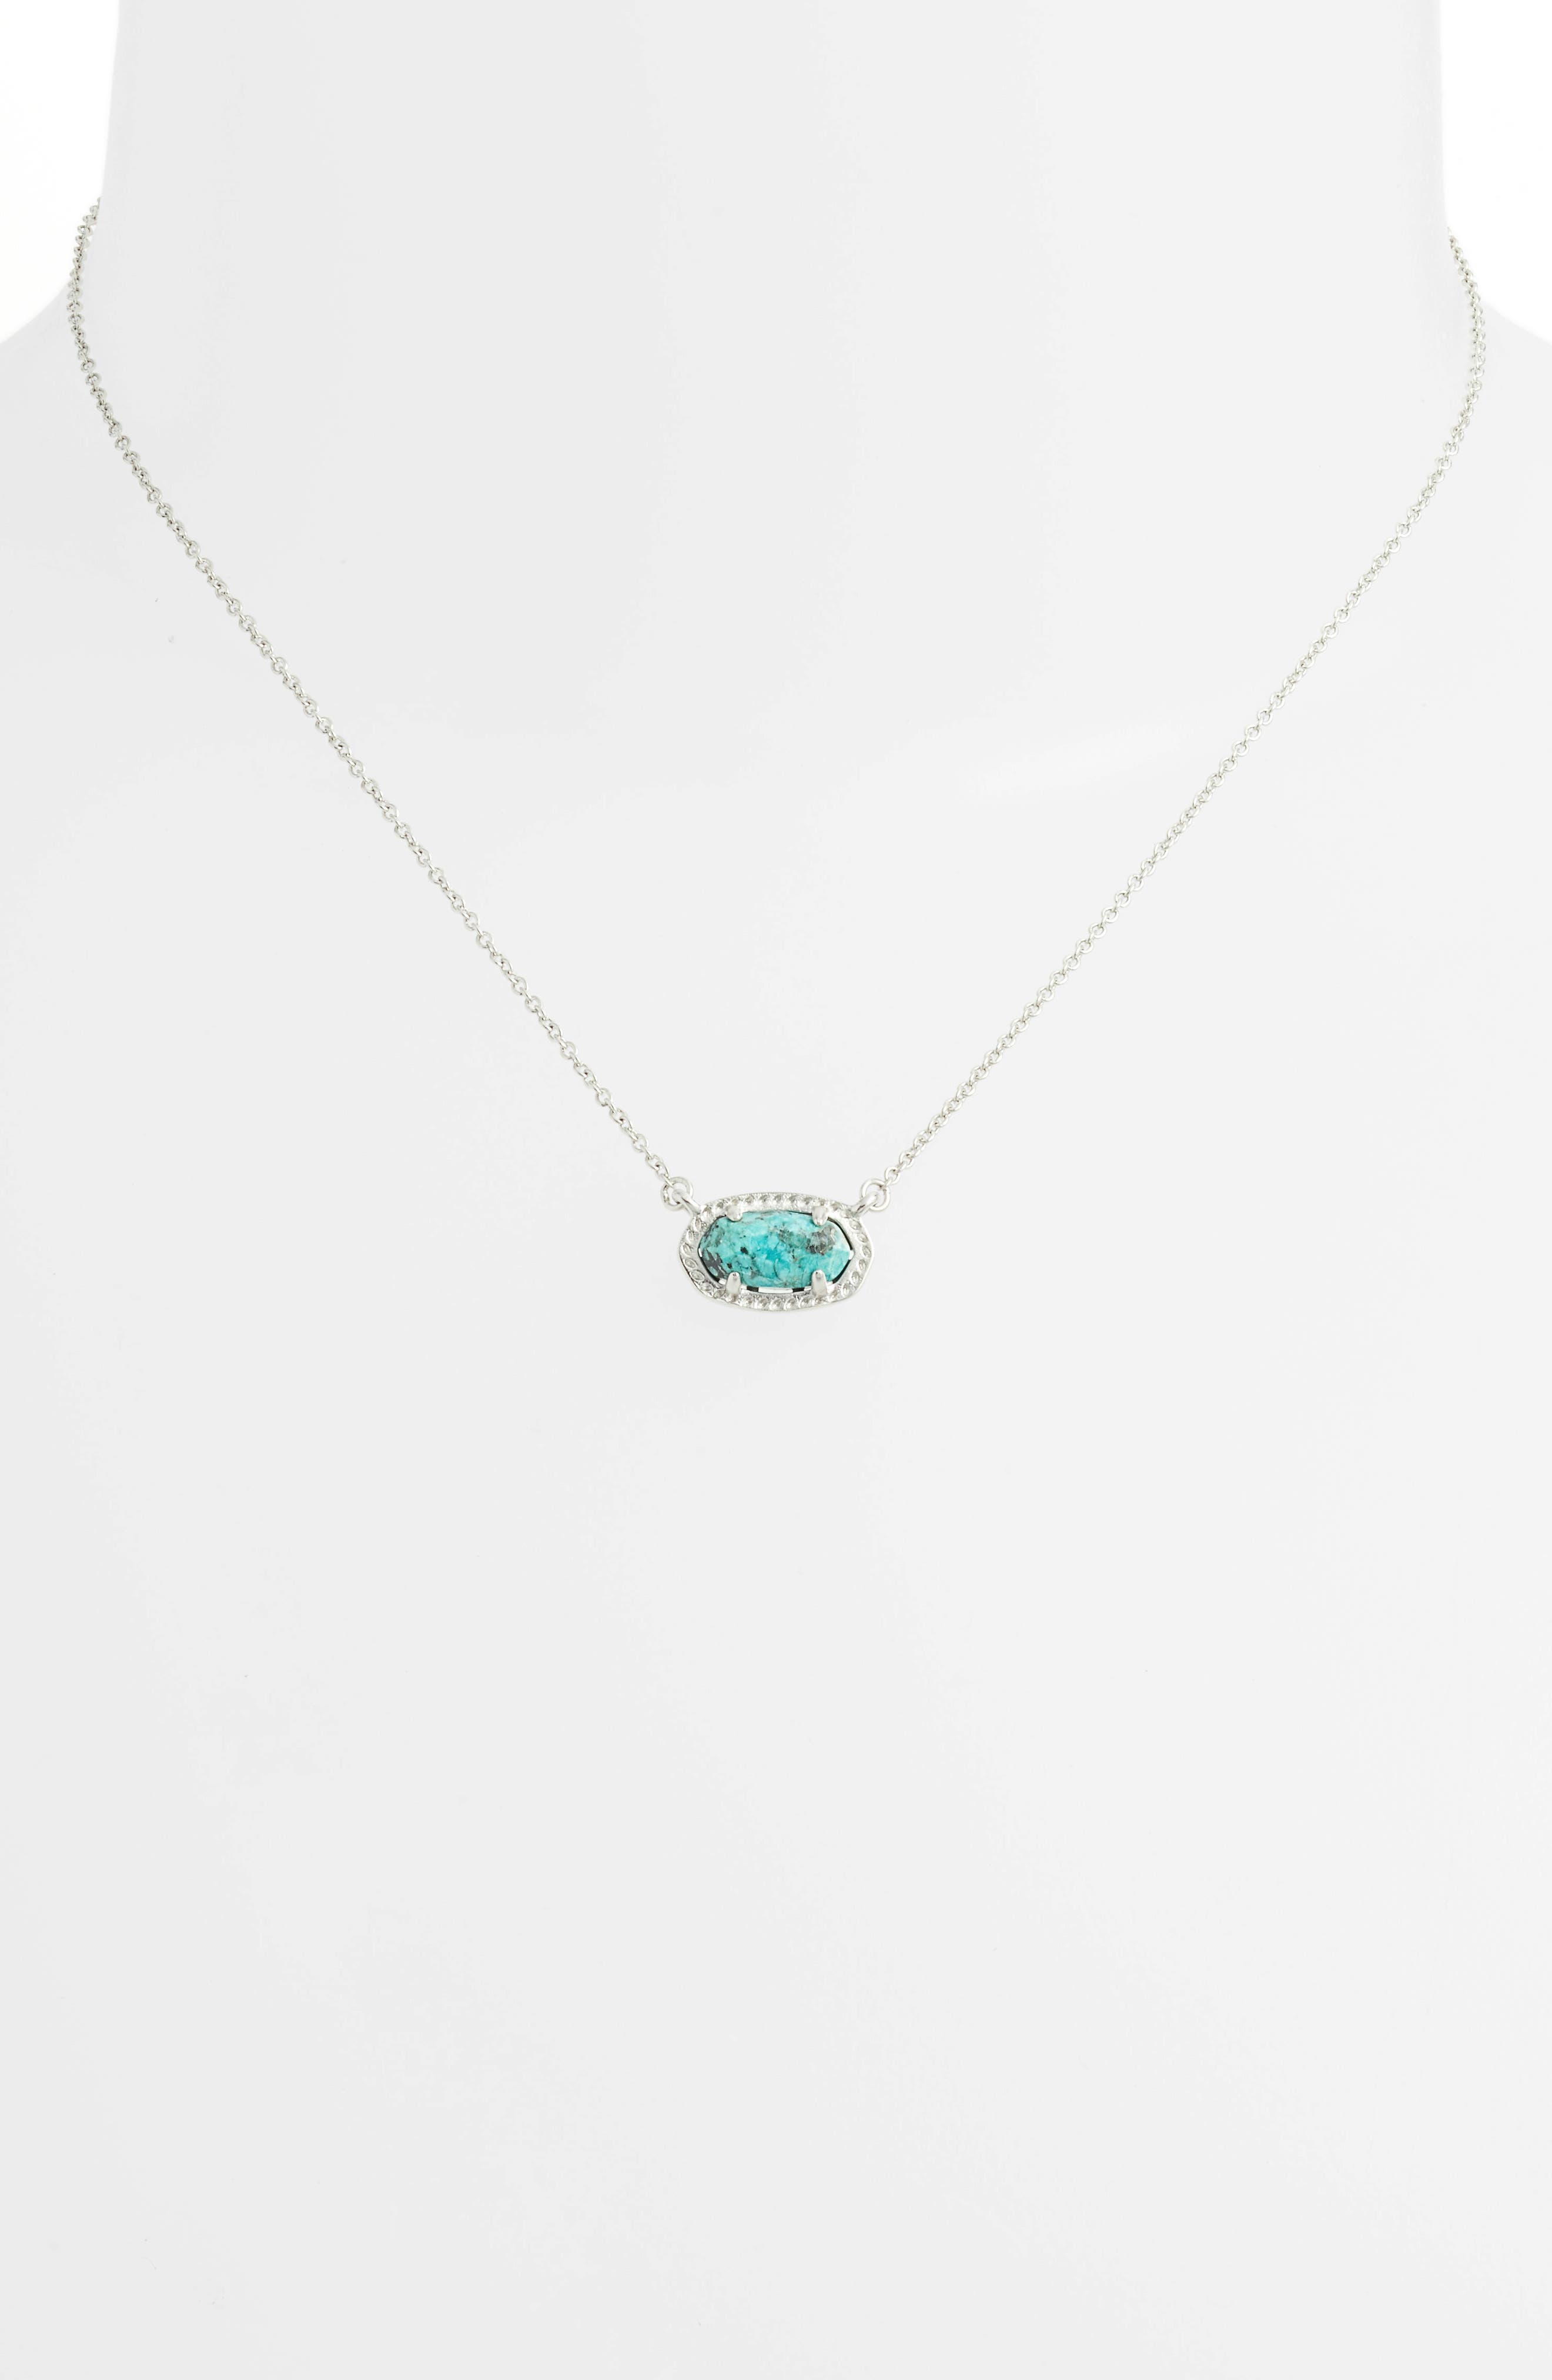 Ember Pendant Necklace,                             Alternate thumbnail 2, color,                             AFRICAN TURQUOISE/ SILVER